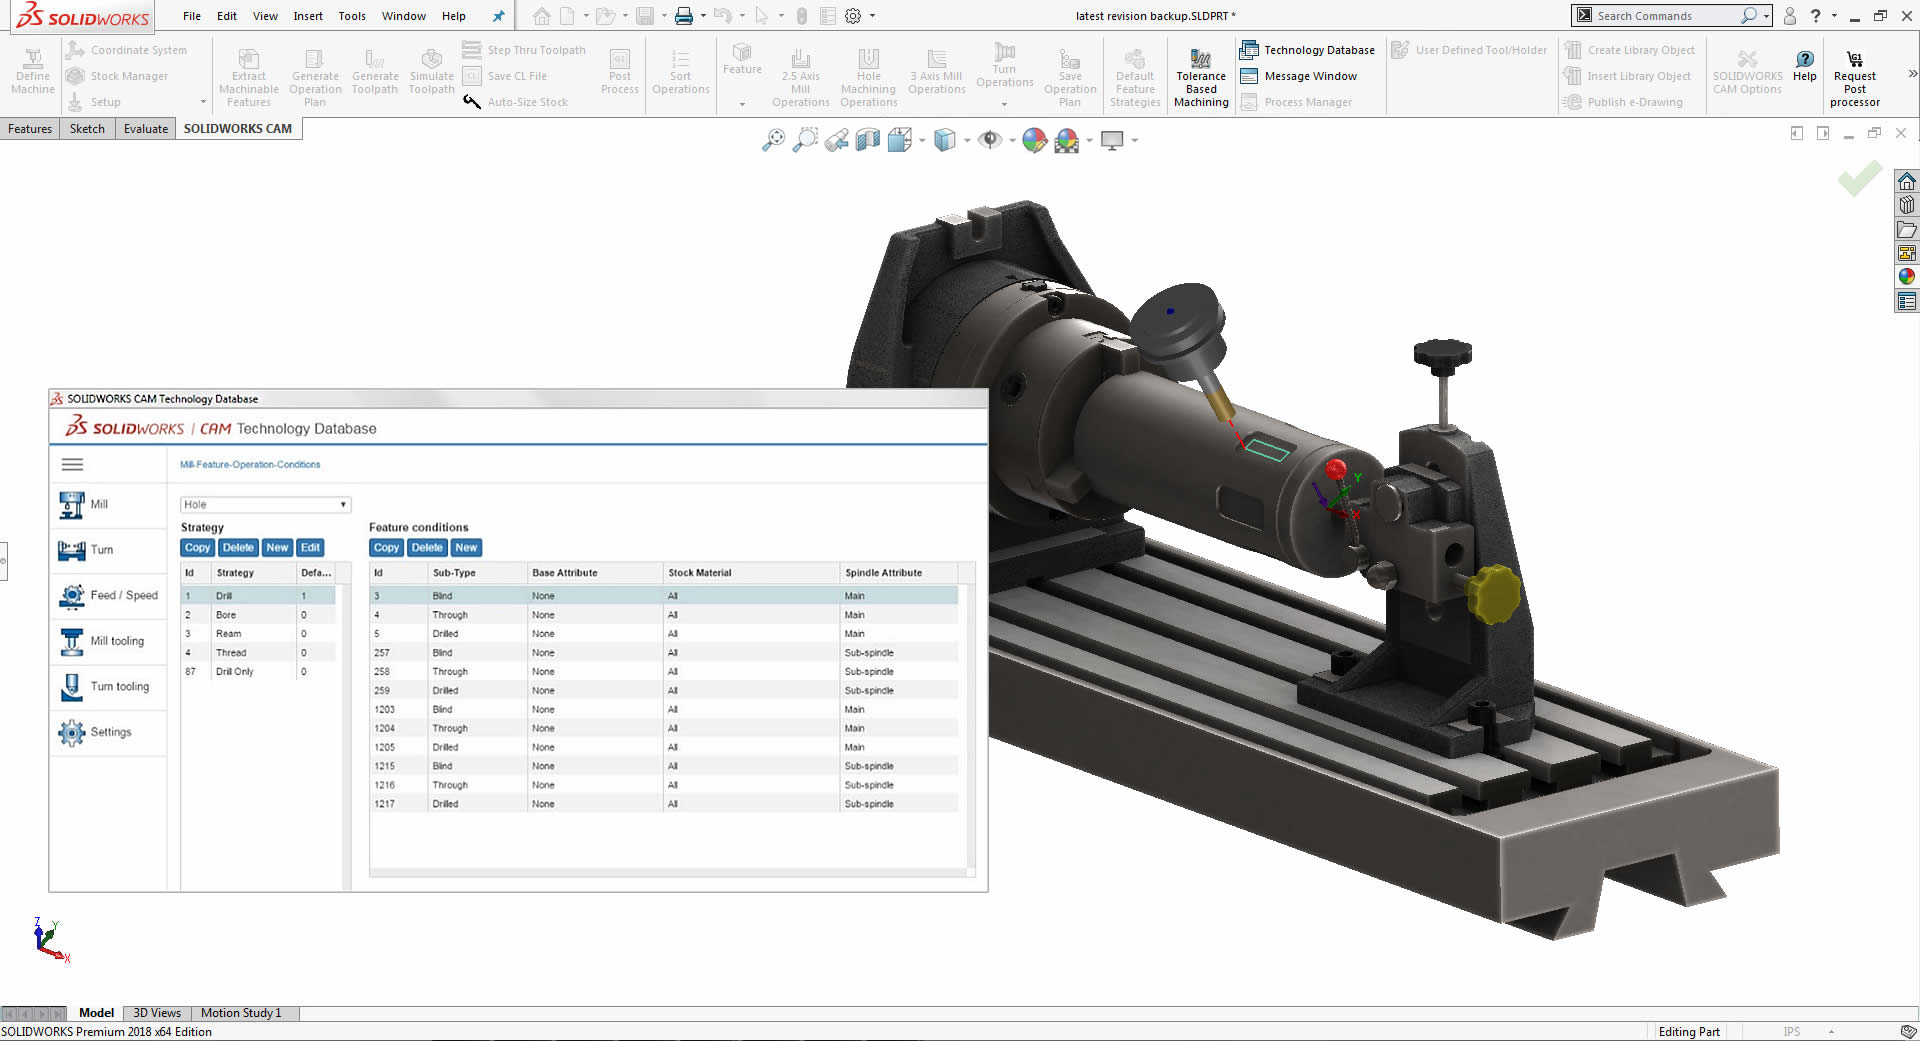 SOLIDWORKS CAM Standard Knowledge Based Machining Software